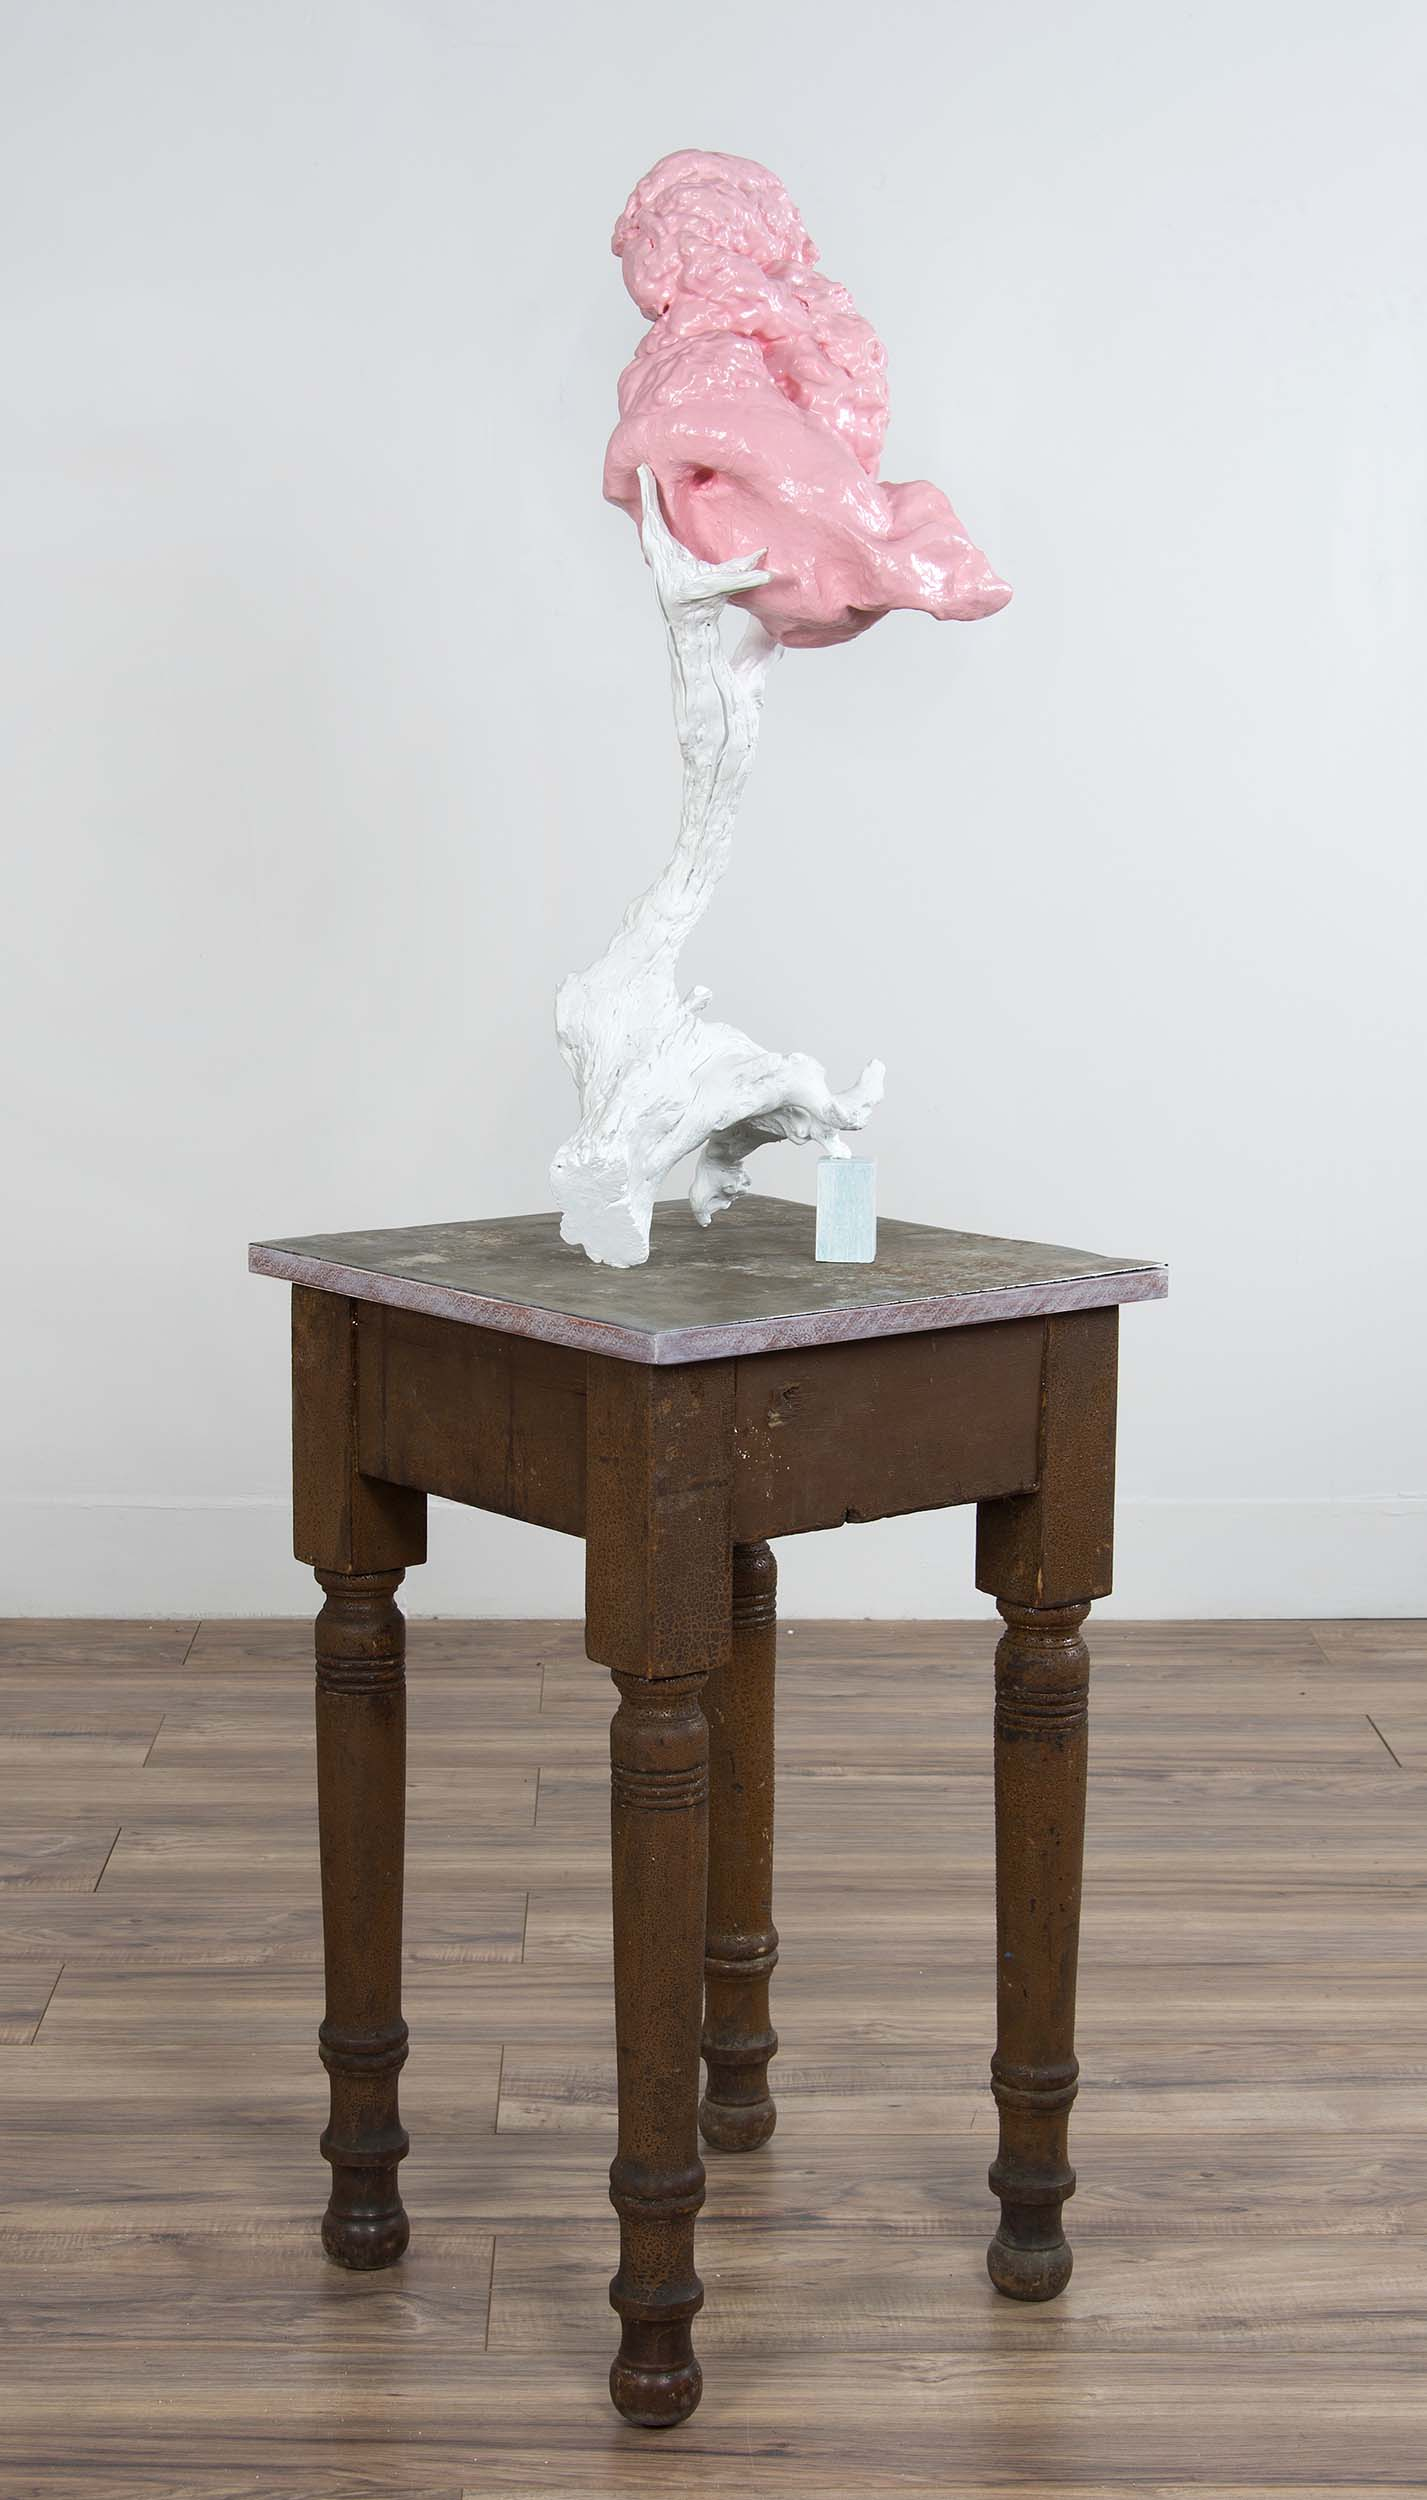 roberley bell, still life with table 2018 foam, wood 58 x 17 x18 inches